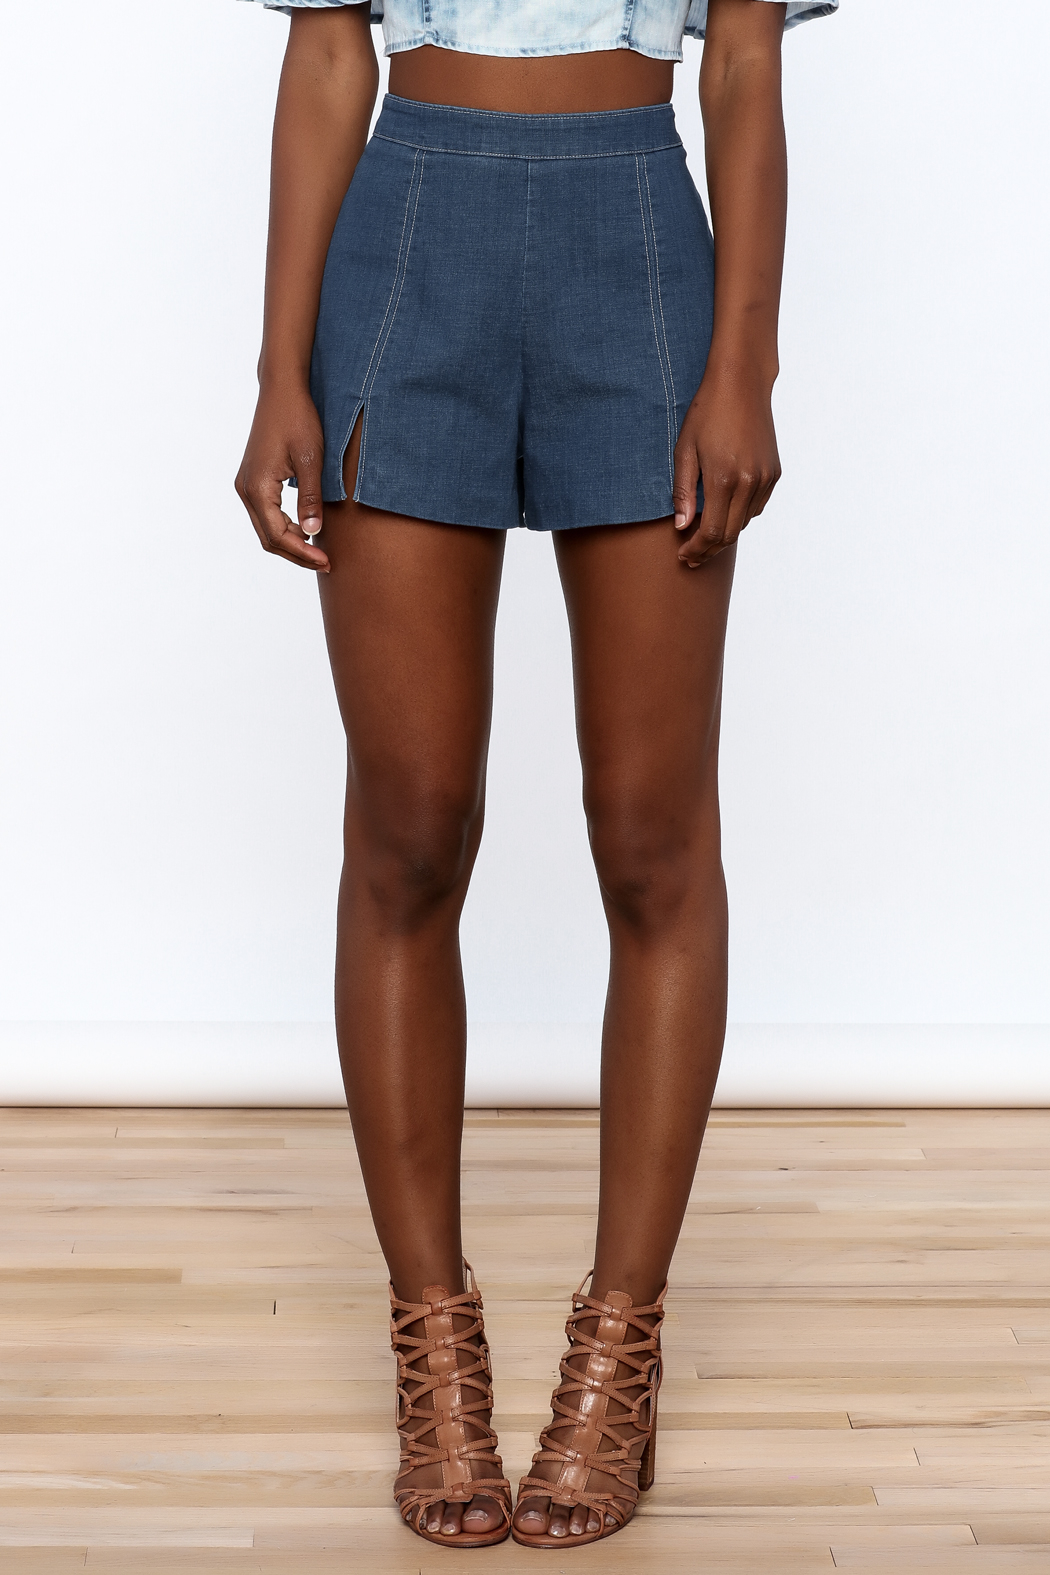 Do & Be High Waist Denim Shorts - Side Cropped Image